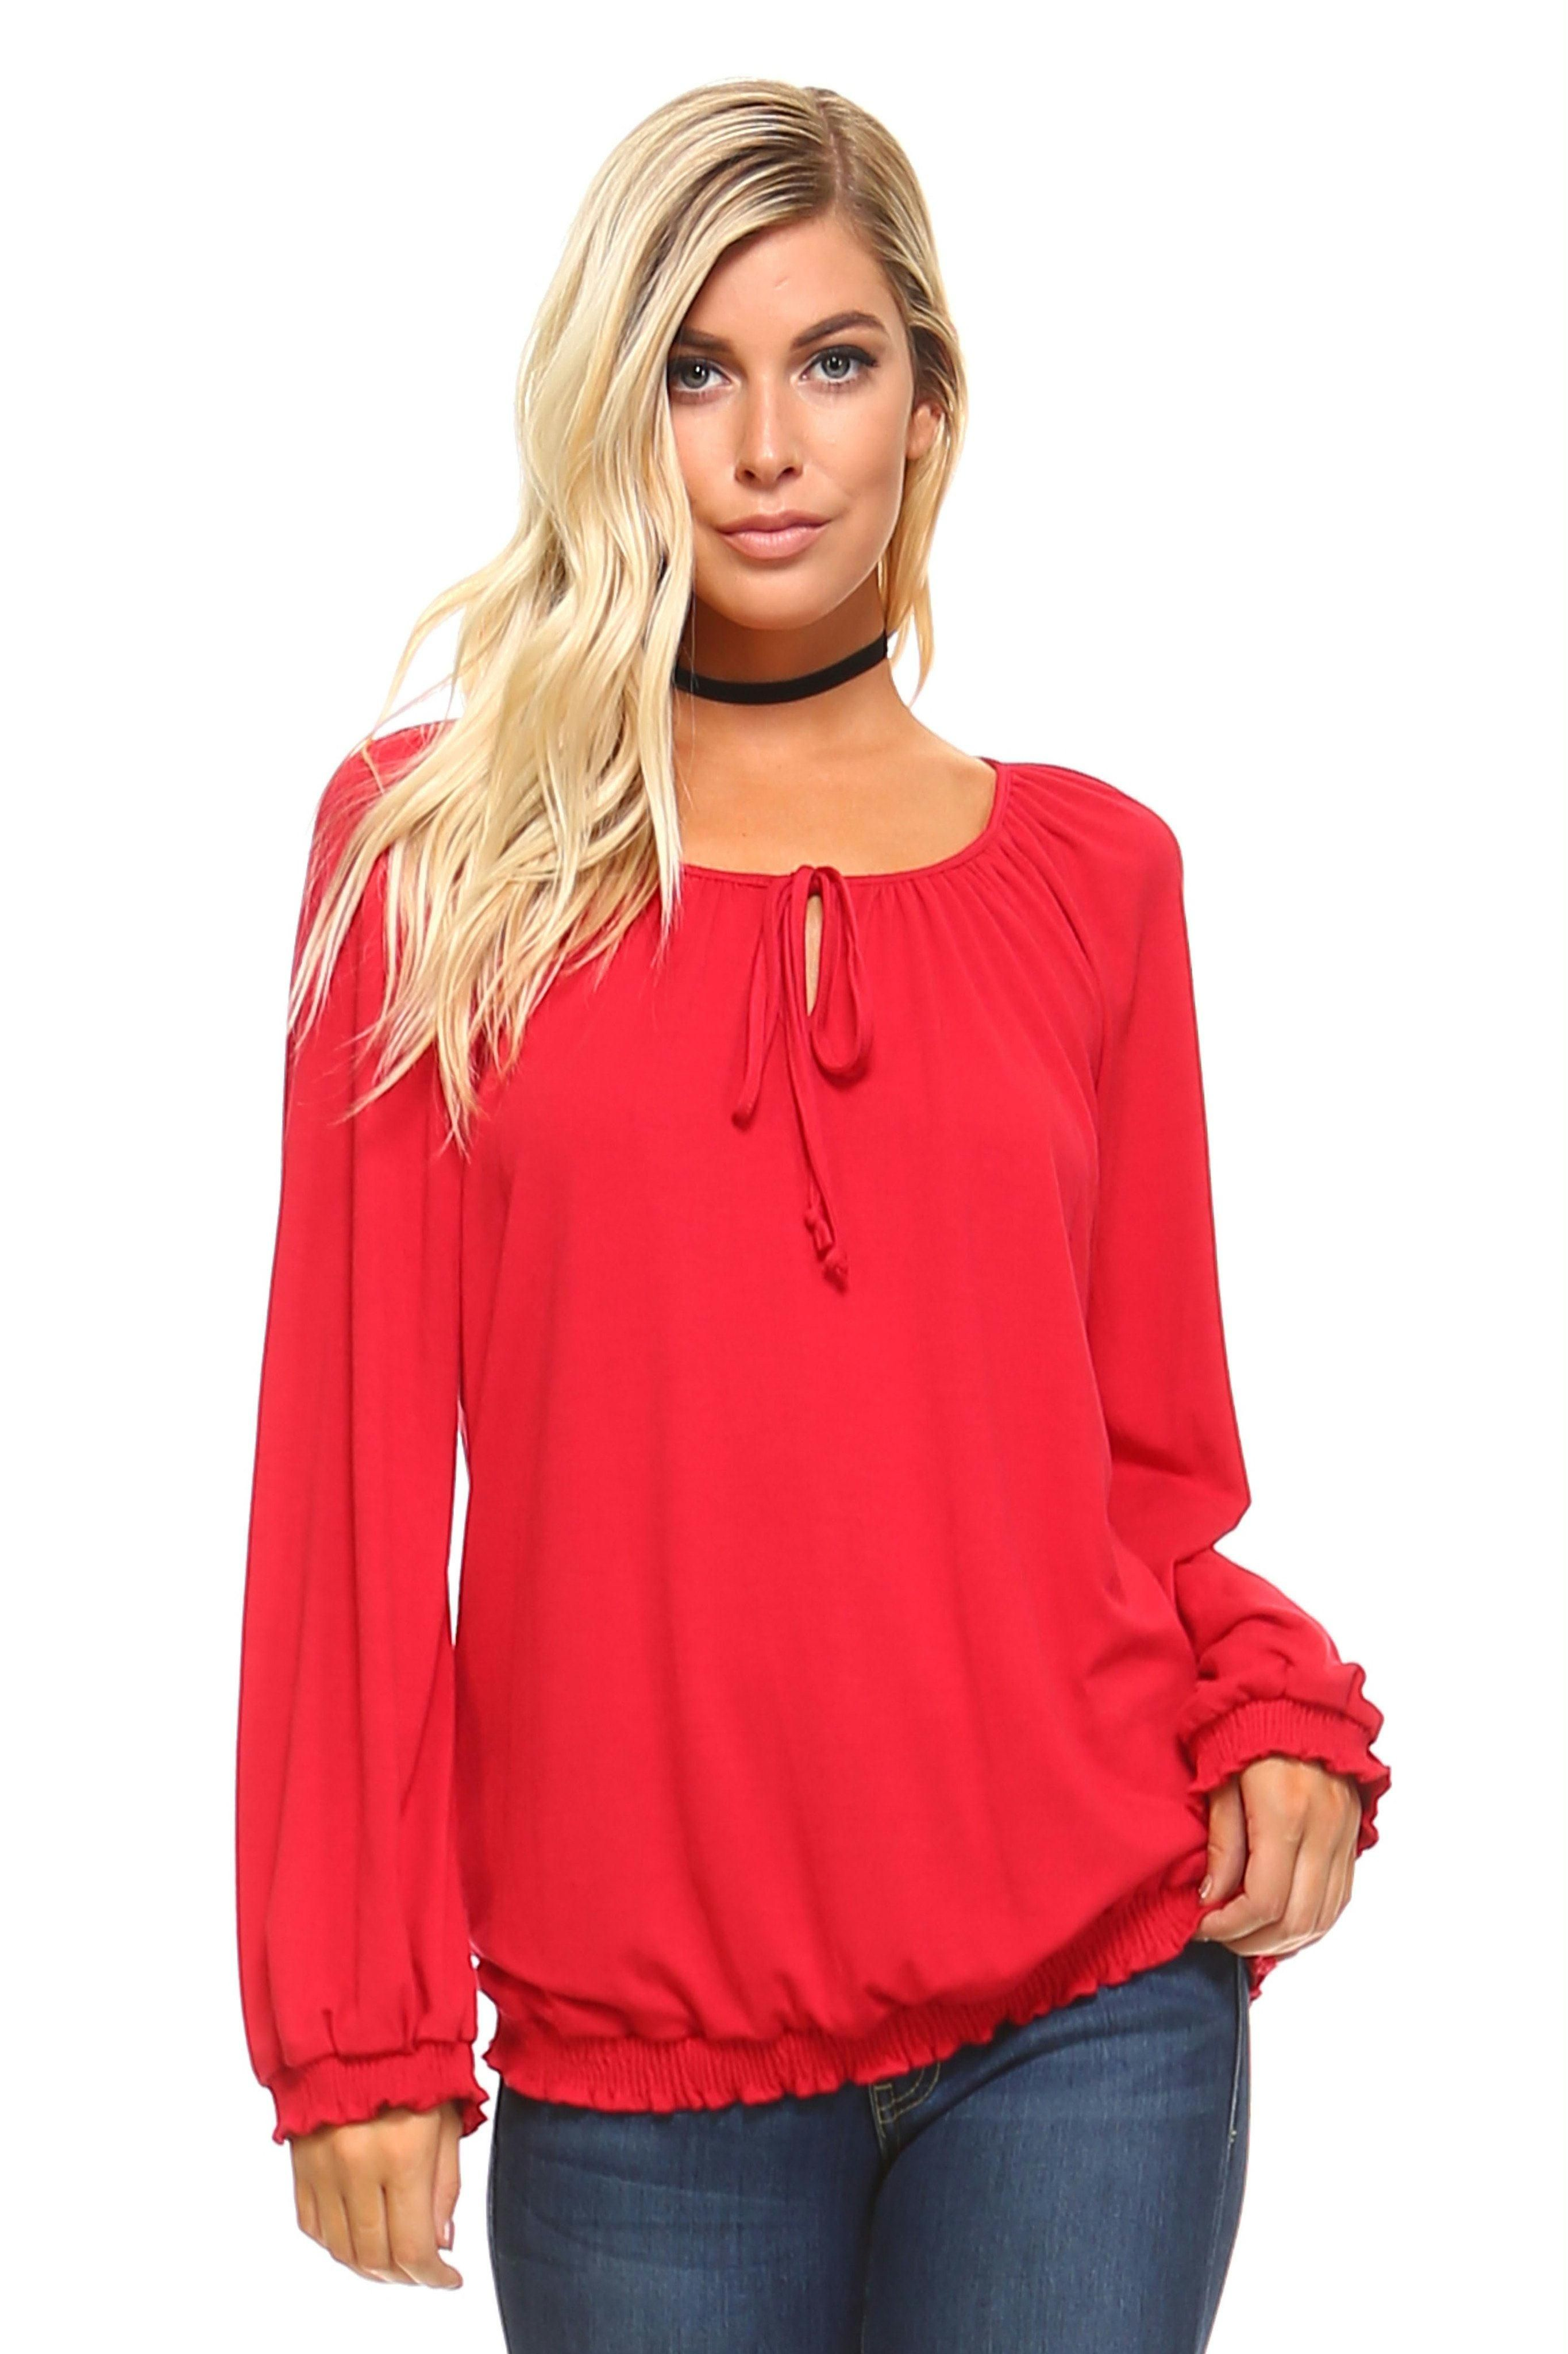 c48b0a69d16 Women's long sleeve, loose fit peasant top with decorative tie on top and  elastic band at the bottom. Model is wearing a size Small 64% Polyester 33%  Rayon ...